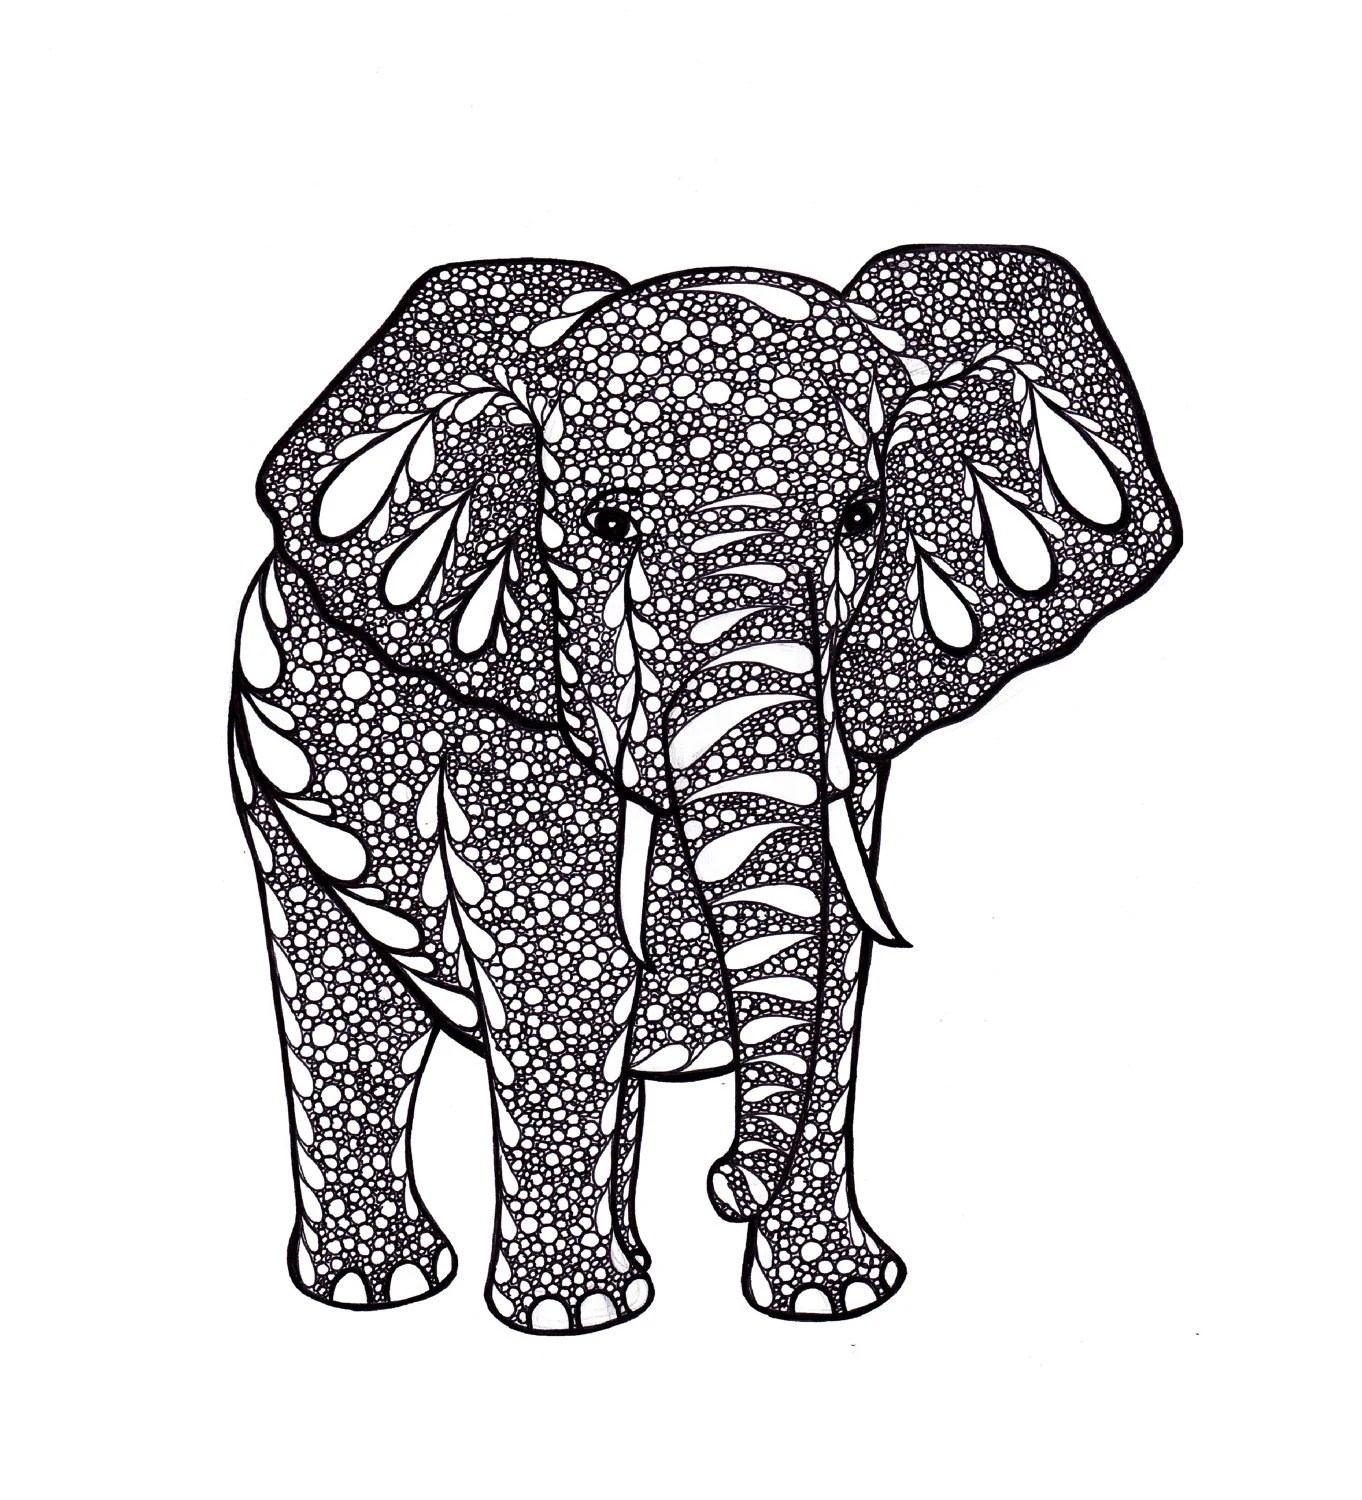 Printable Art, Ink Drawing Elephant Zentangle, Black and White